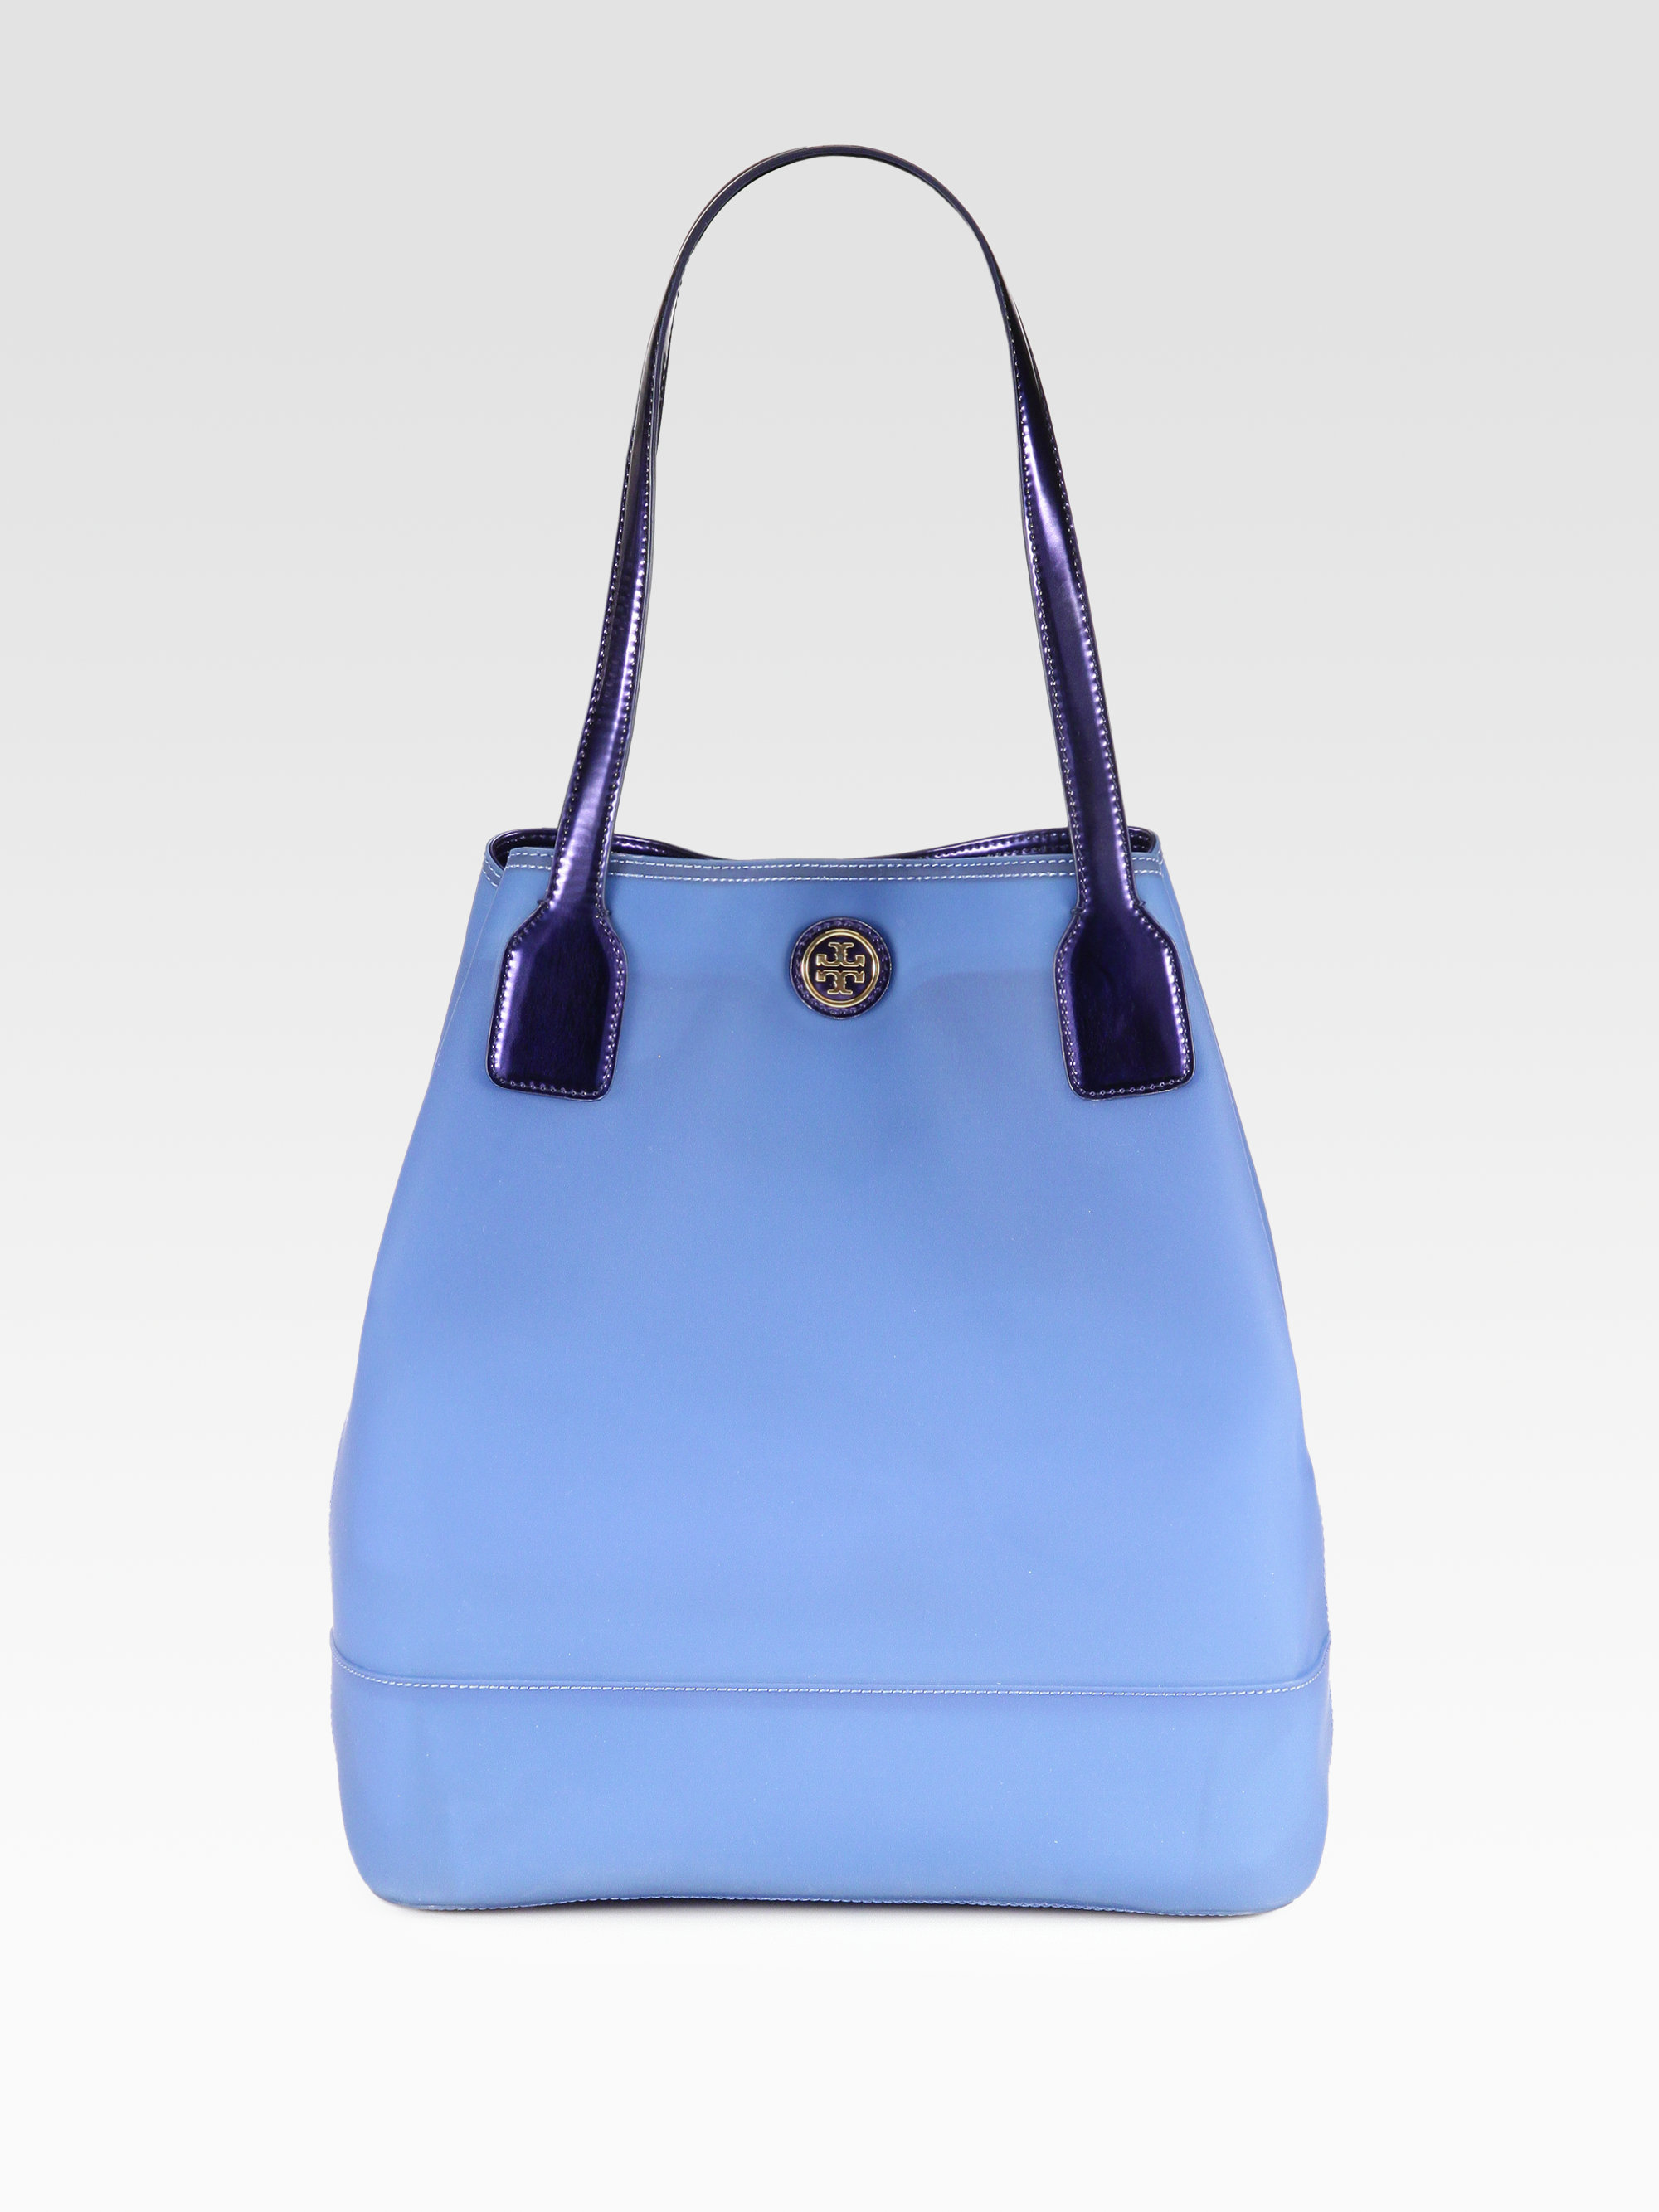 Lyst - Tory Burch Michelle Jelly Tote in Blue 6f45d8f221c23